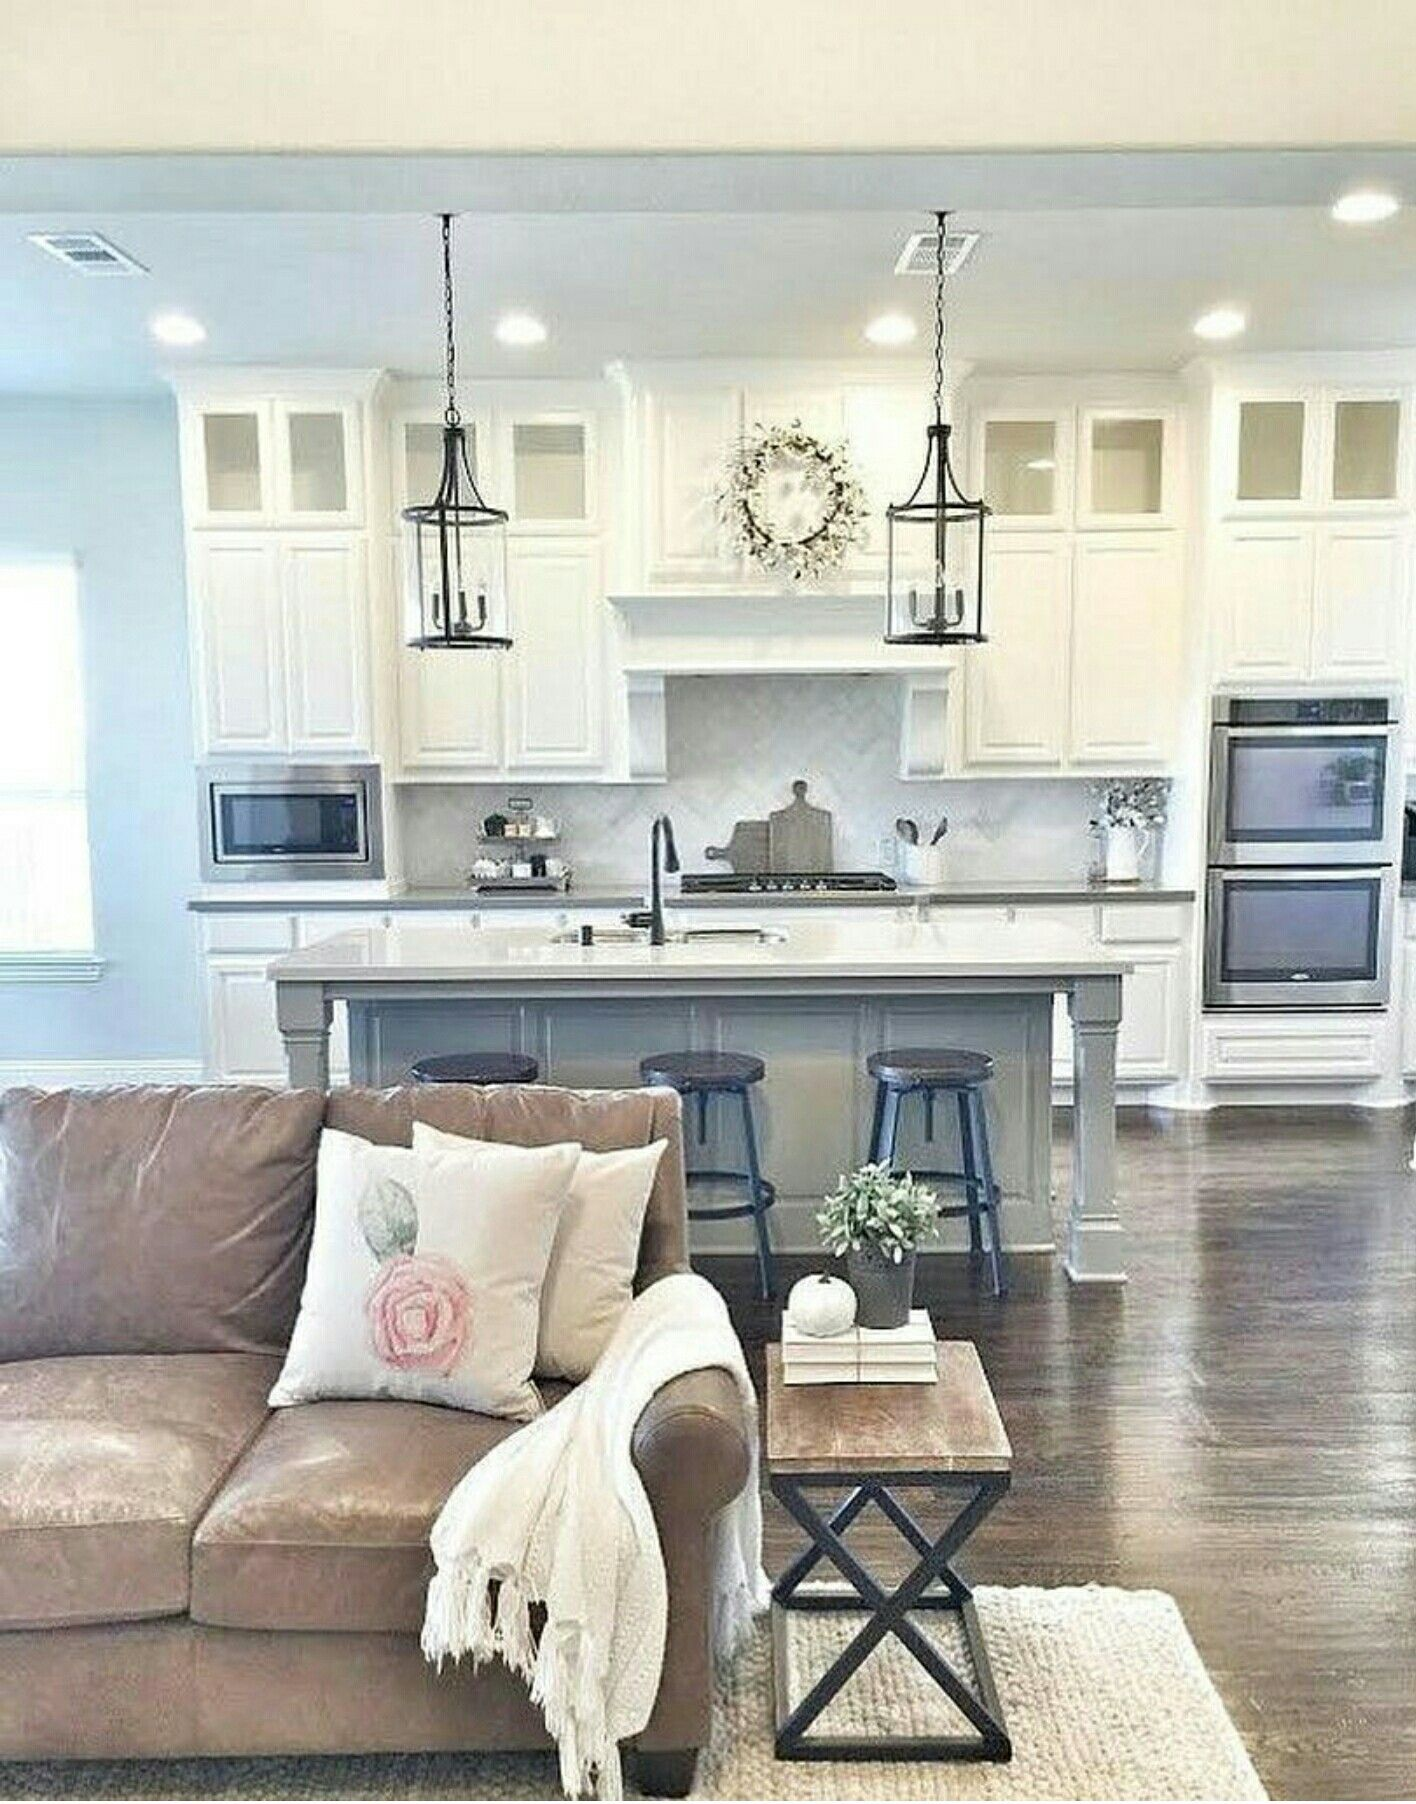 Design For Living Room With Open Kitchen: Love This Color Combo And Open Kitchen To The Living Area